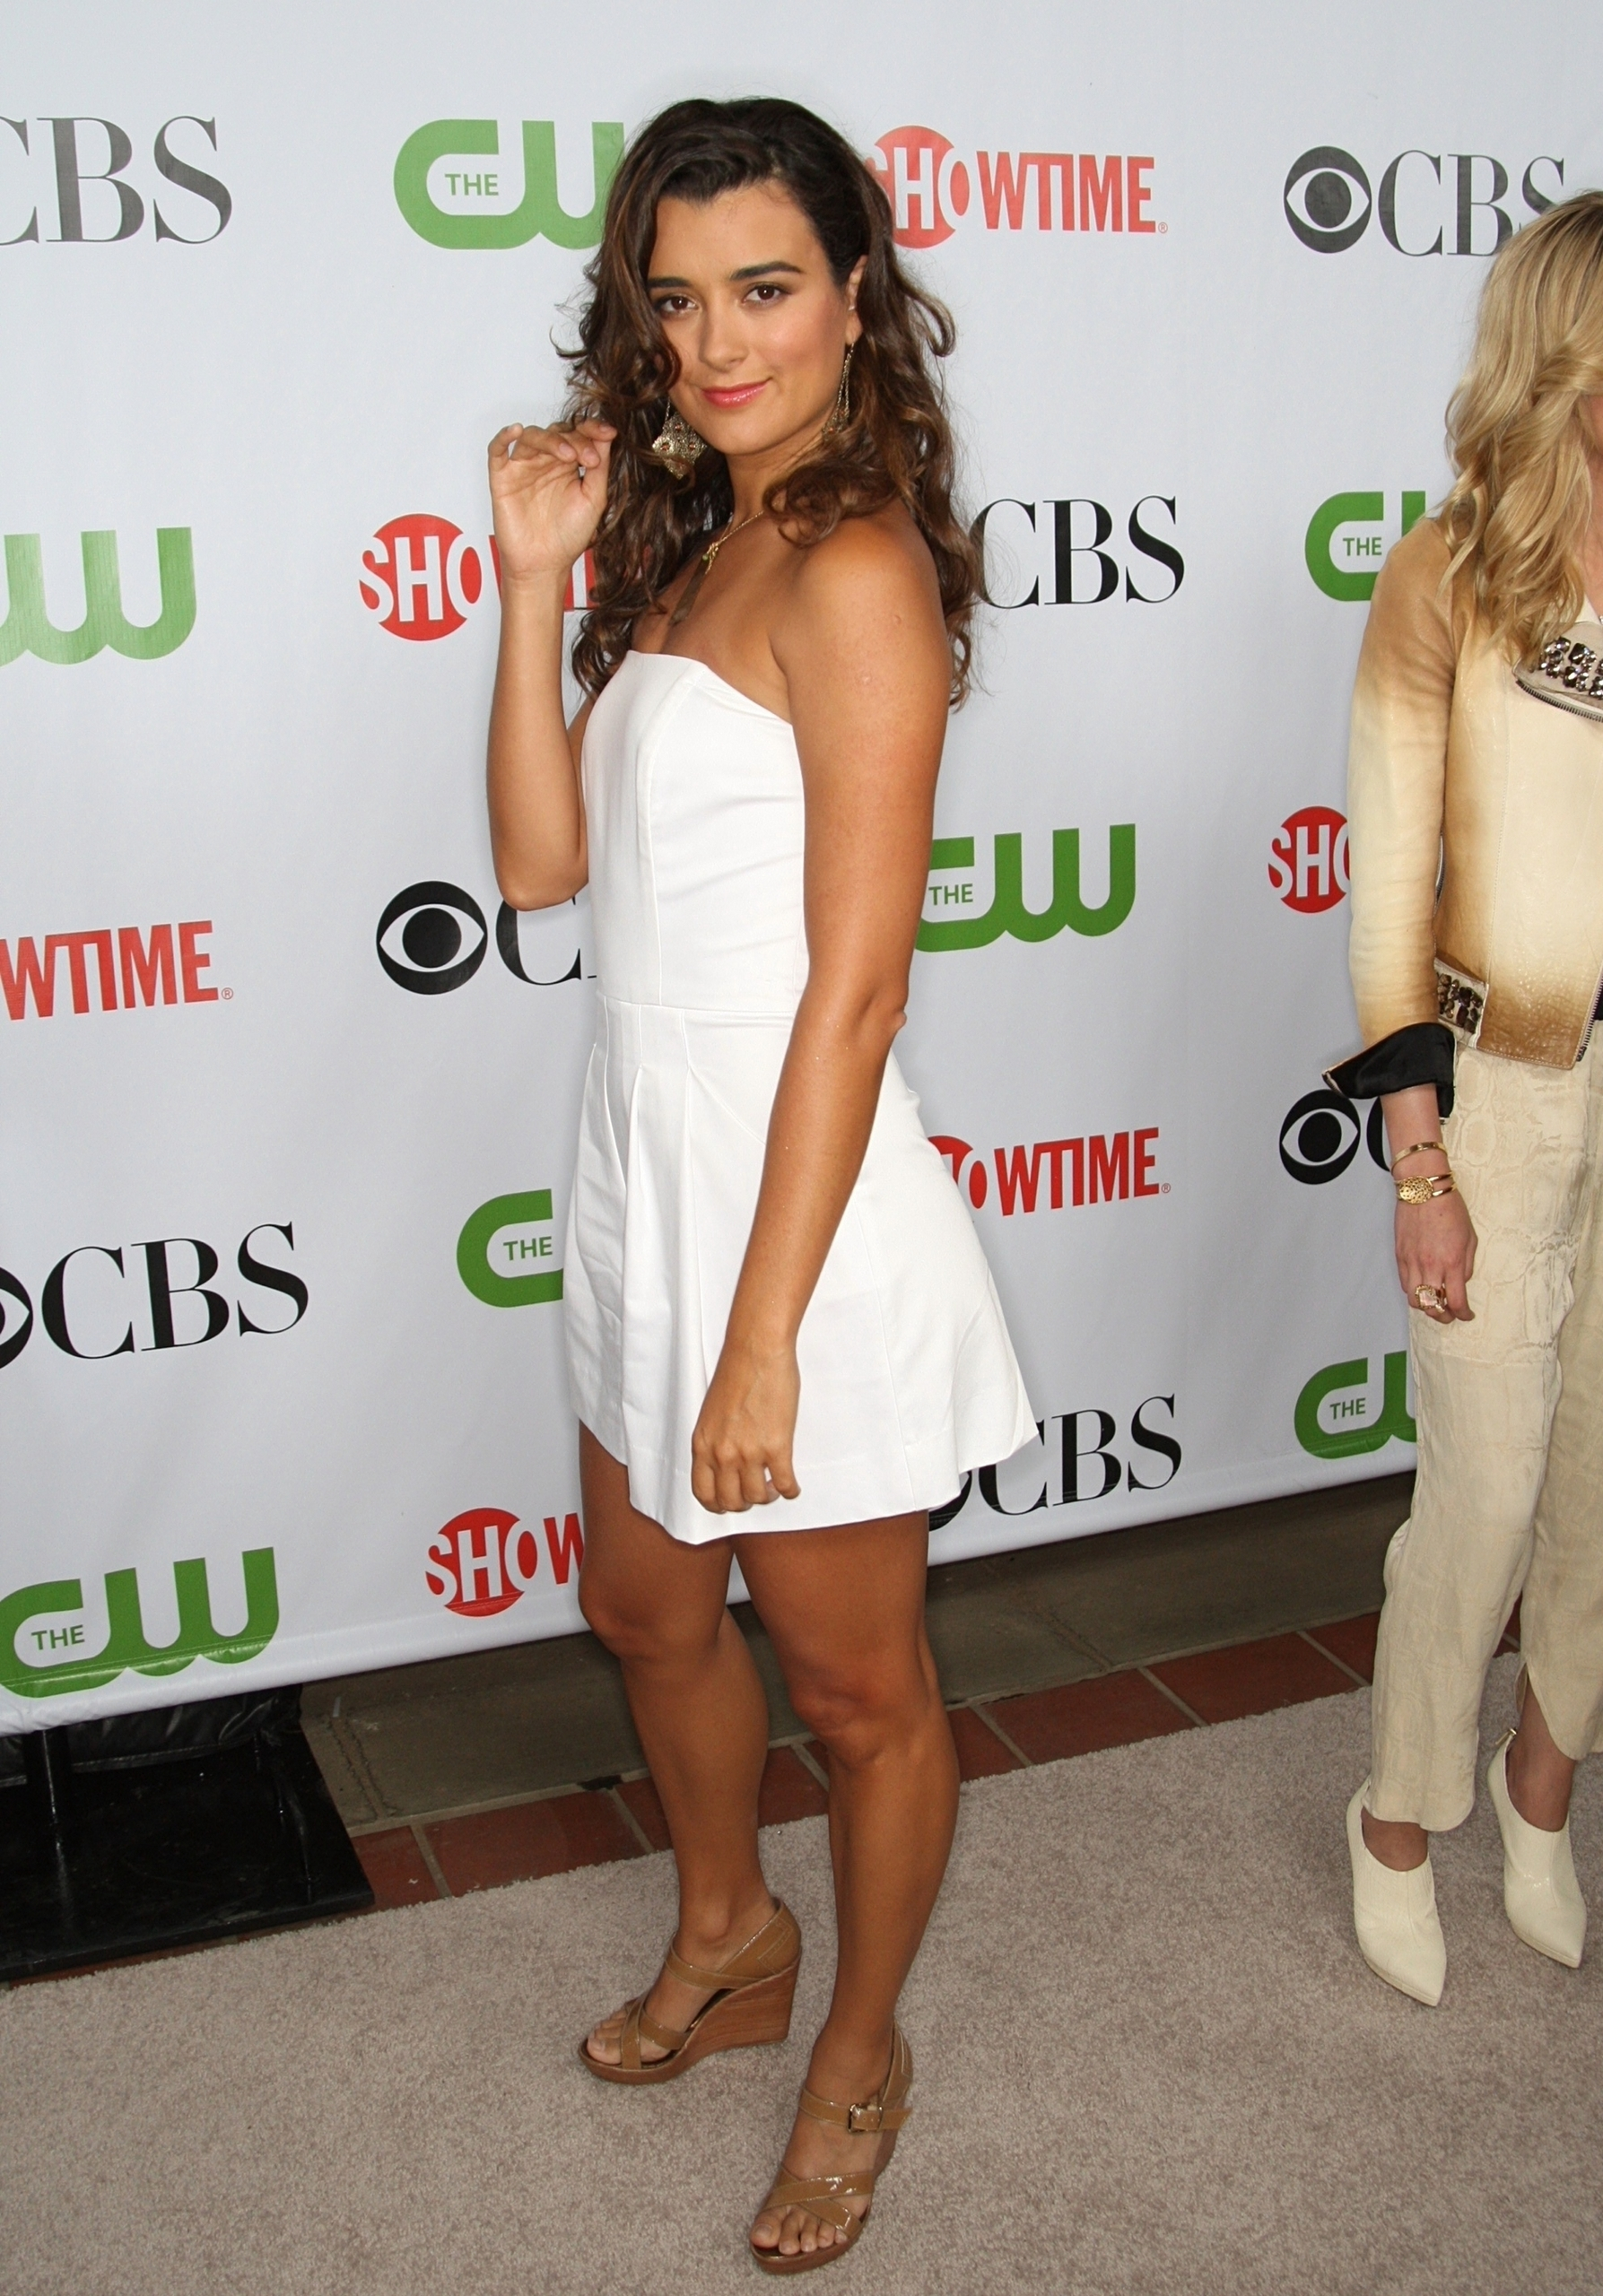 Cote - Cote de Pablo Photo (7534085) - Fanpop Claire Danes Salary